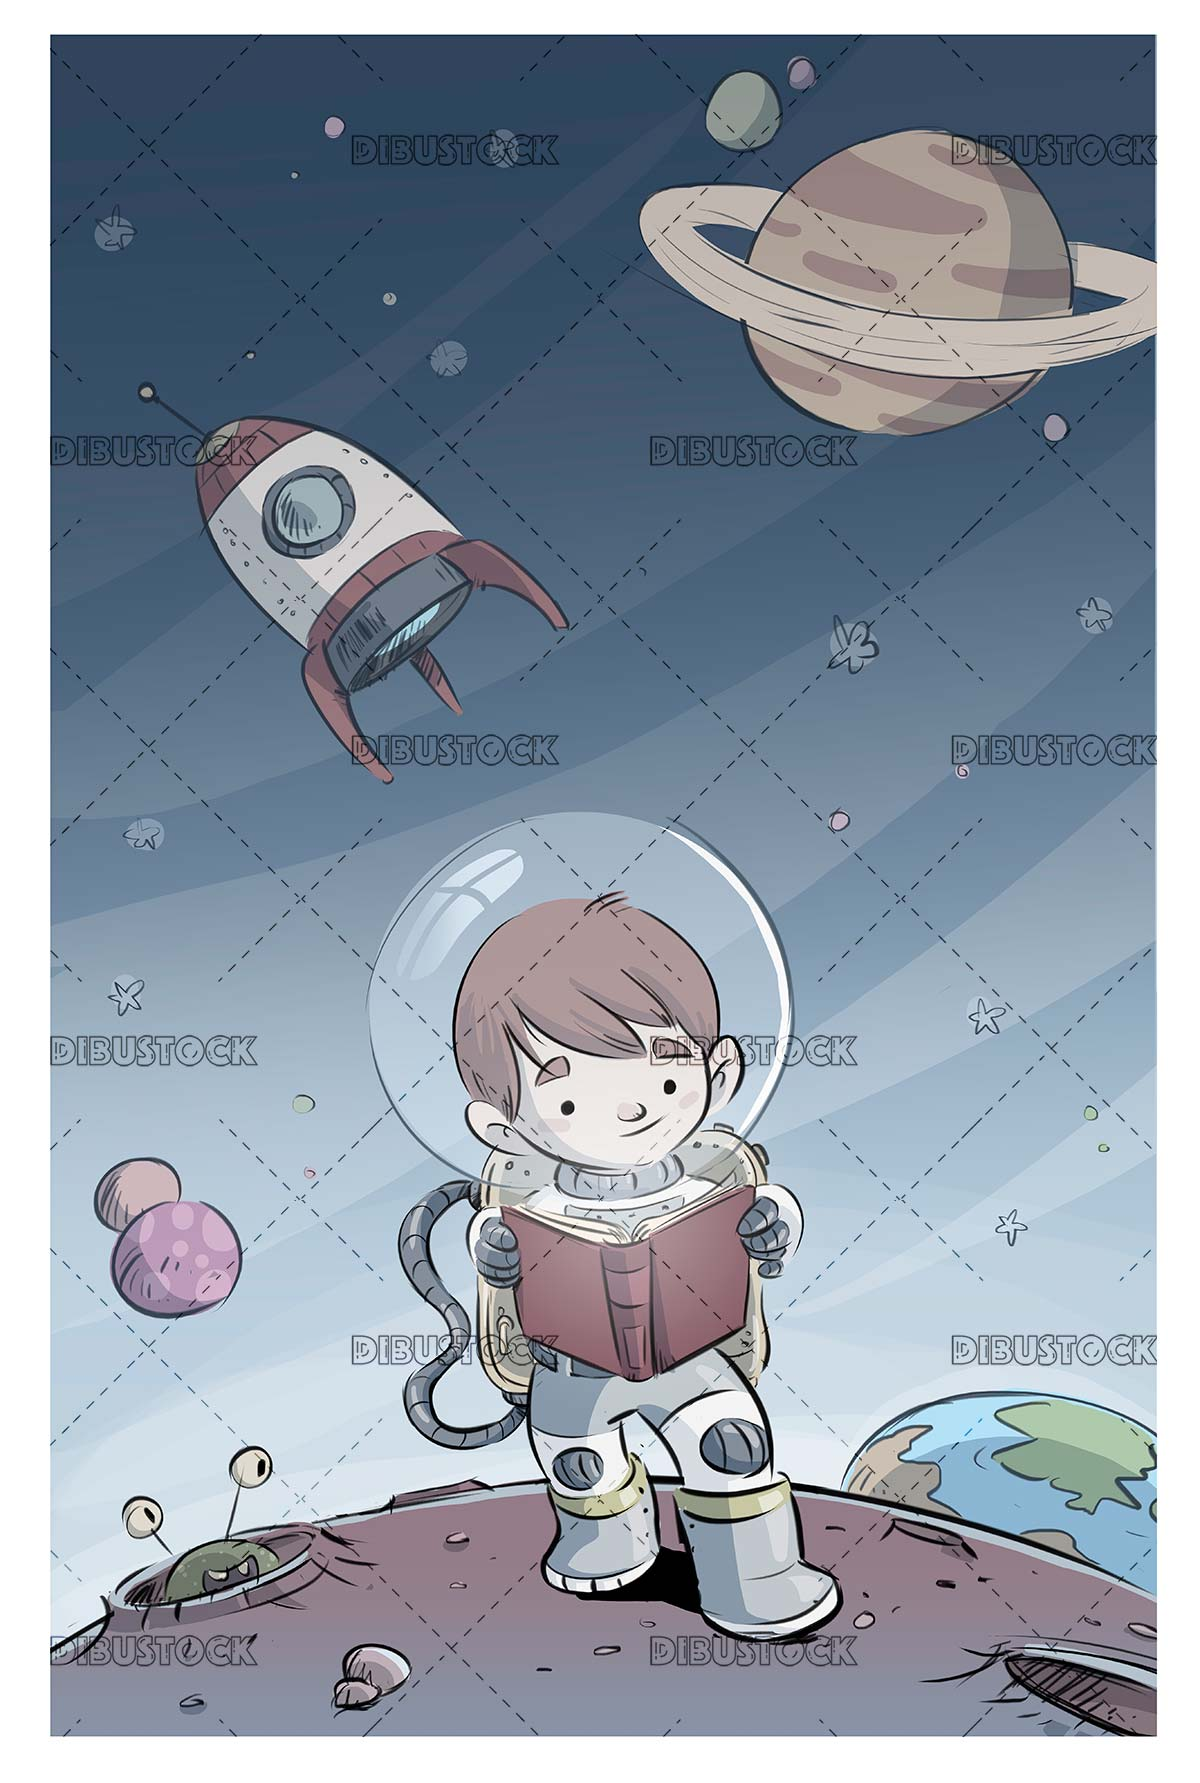 boy with spacesuit reading on a planet